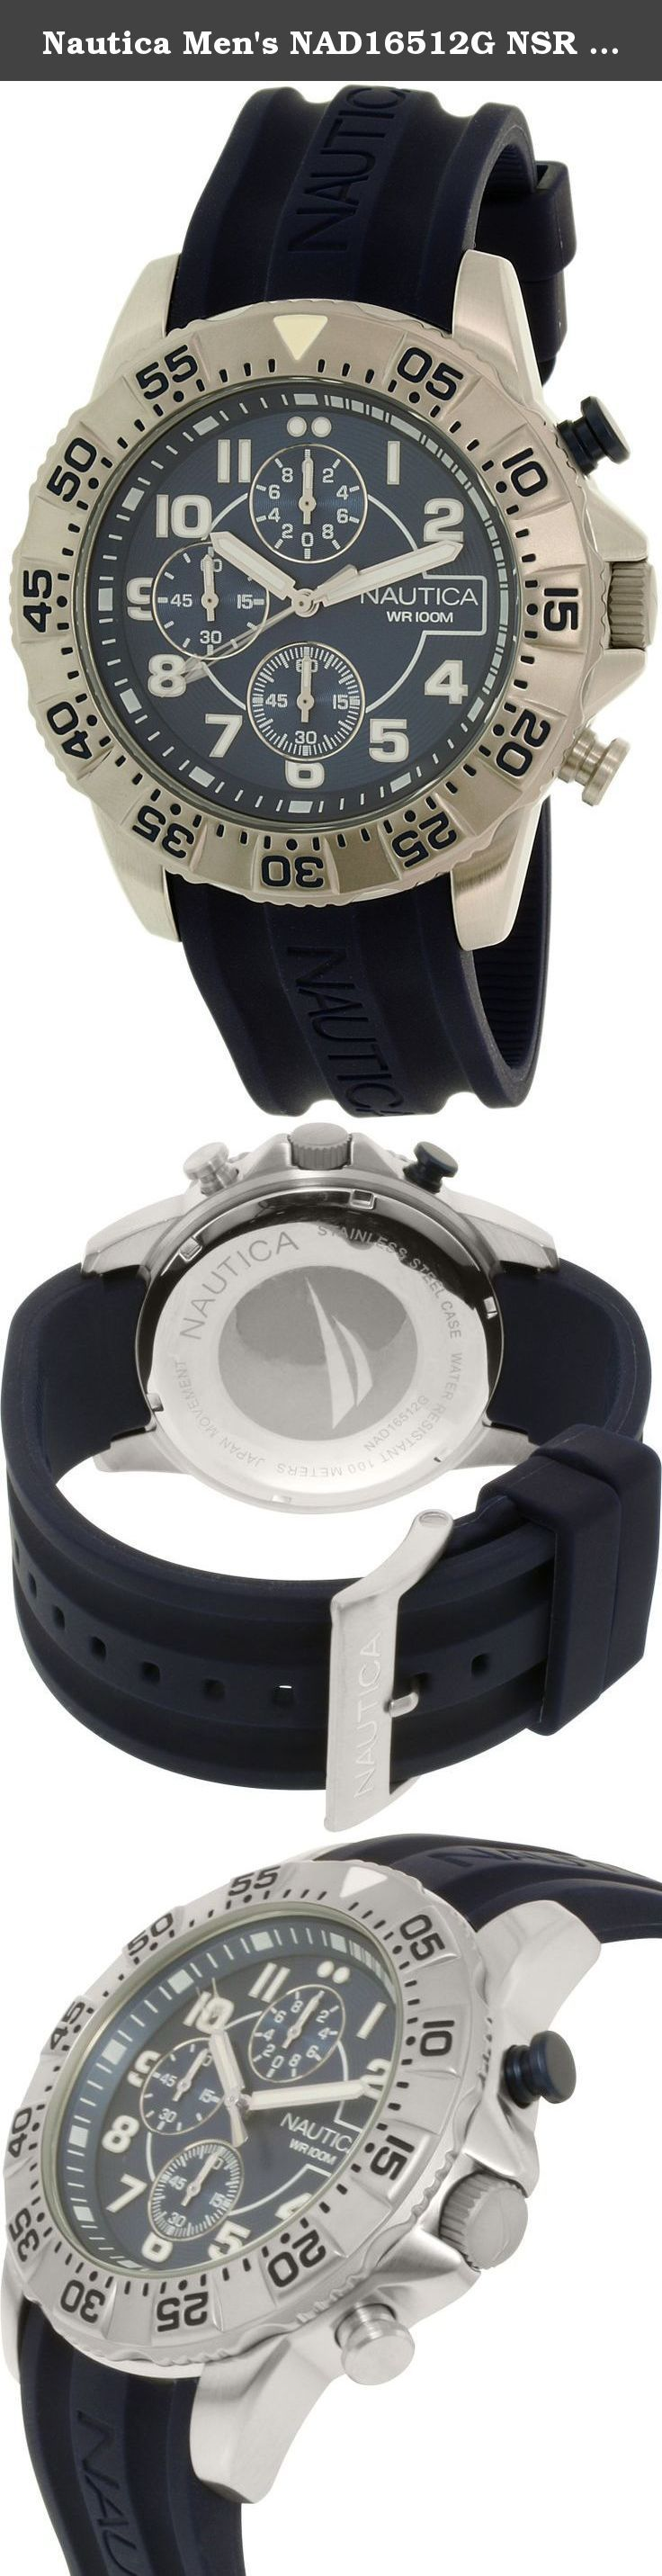 Nautica Men's NAD16512G NSR 104 Analog Display Analog Quartz Blue Watch. Who says casual and classy dont mesh Theres always a way to make it work Laid-back doesnt have to mean boring or drab and this Nautica Nsr 104 watch is proof for those who doubt it Its the perfect in-between a duo of dapper and down-to-earth It features a 44MM stainless steel case that makes for a dapper appearance right off the bat and creates a subtle contrast against the watchs blue dial thats perfectly pleasing…